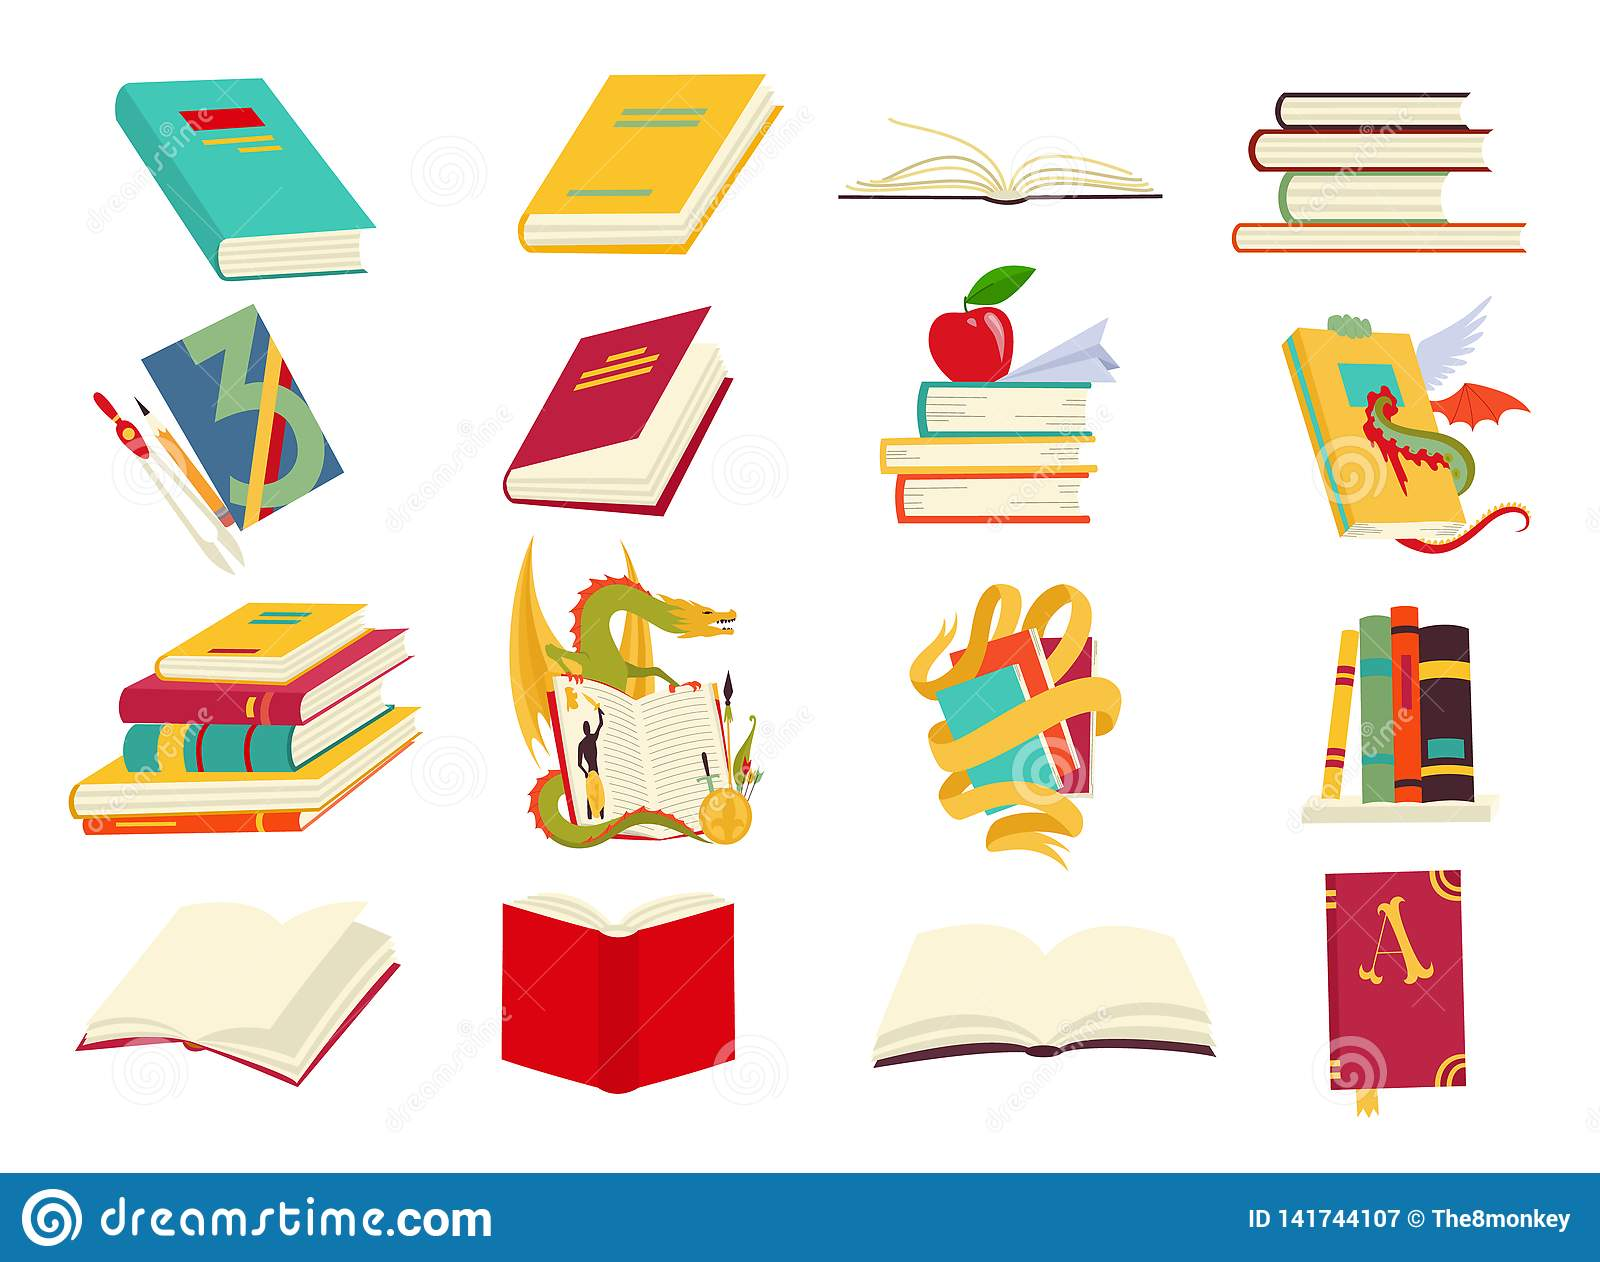 Icons of books vector set in a flat design style. Books in a stack, open, in a group, closed, on the shelf. Reading